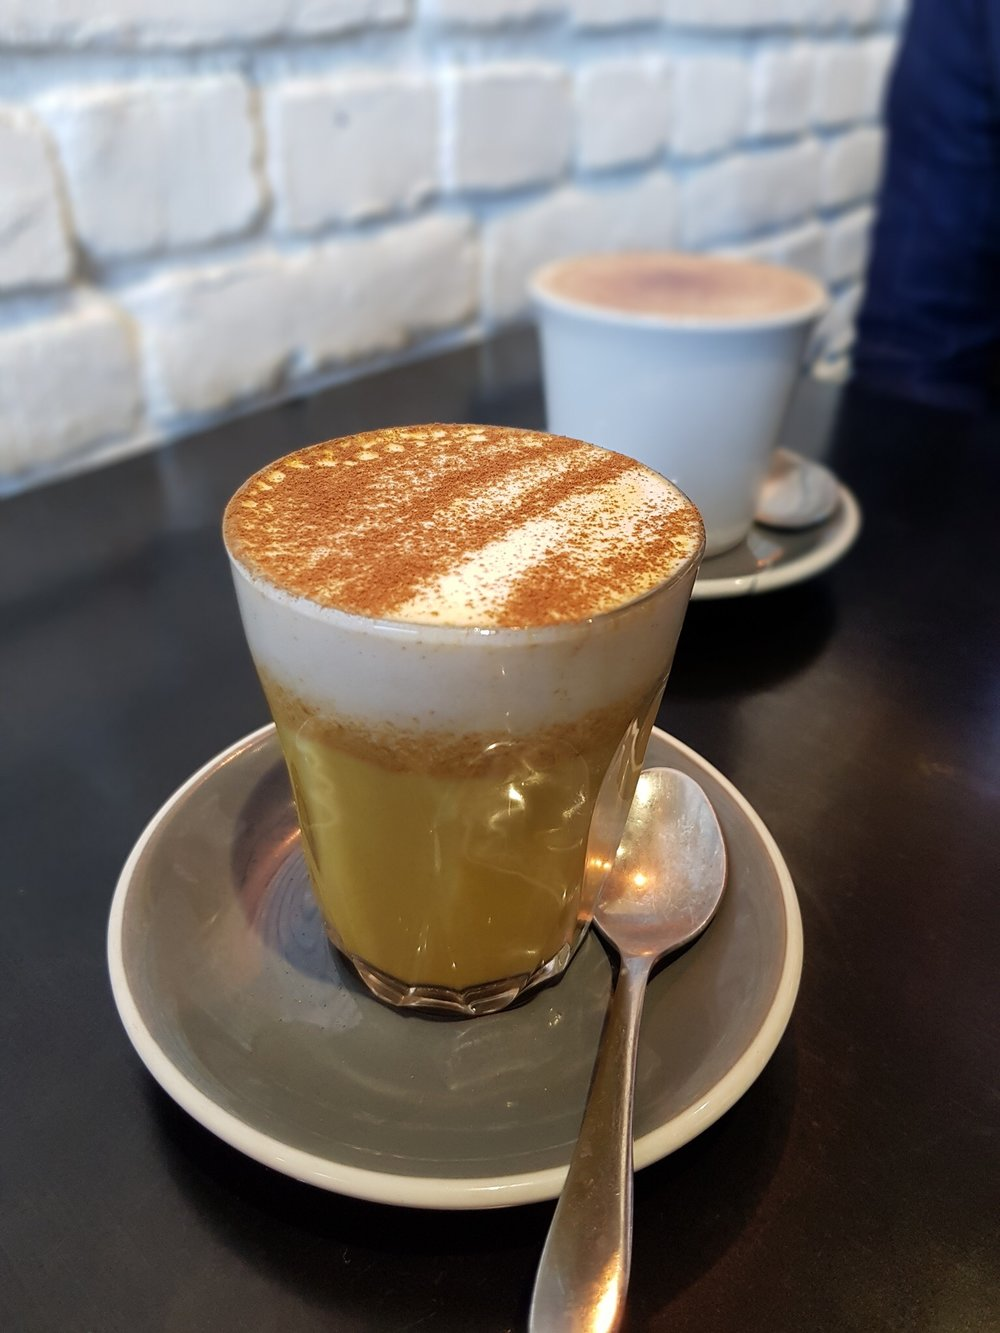 3. Try a tumeric Latte